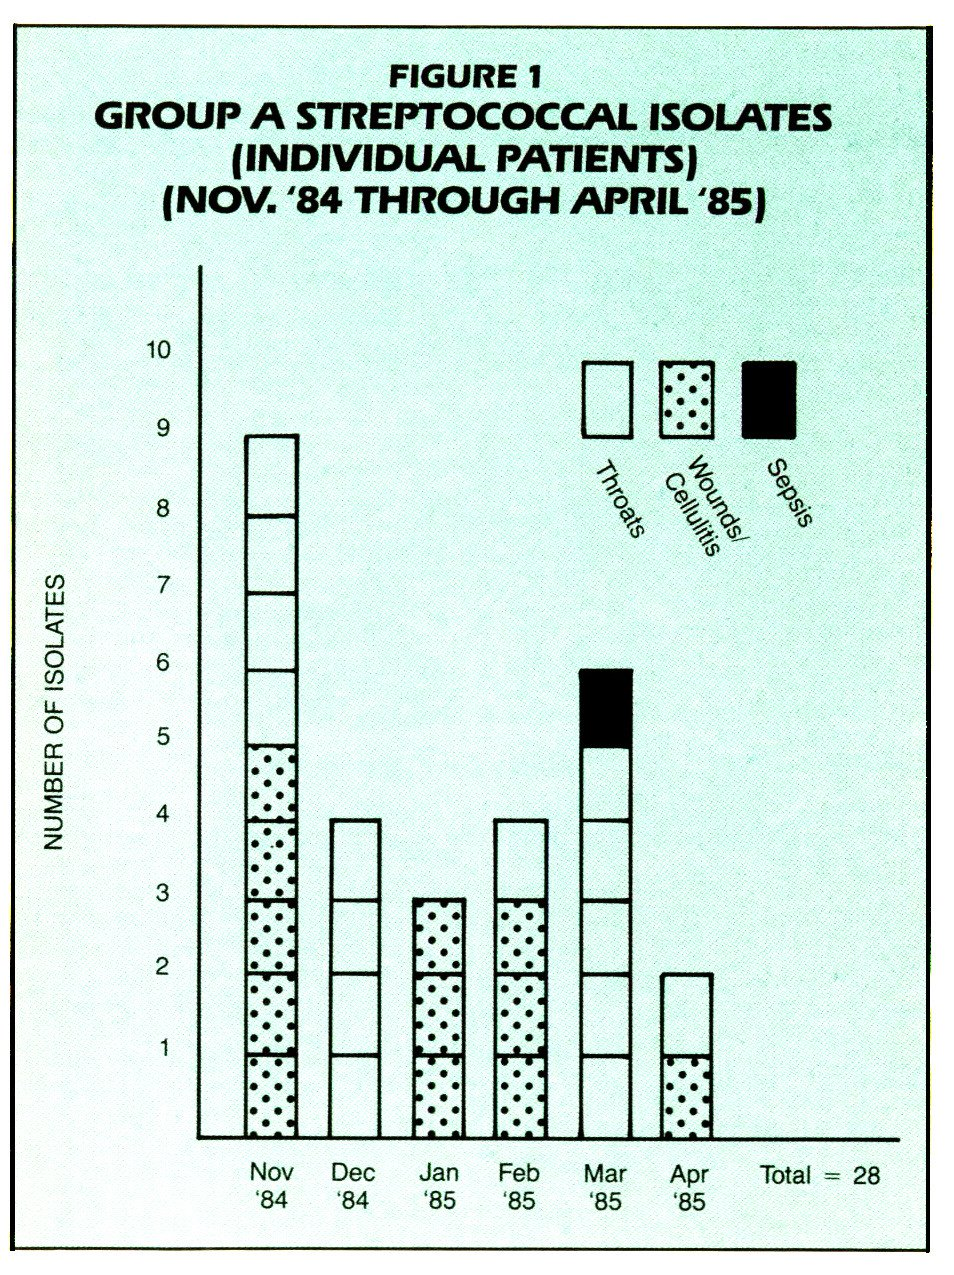 FIGURE 1GROUP A STREPTOCOCCAL ISOLATES (INDIVIDUAL PATIENTS) (NOV. '84 THROUGH APRIL '85)